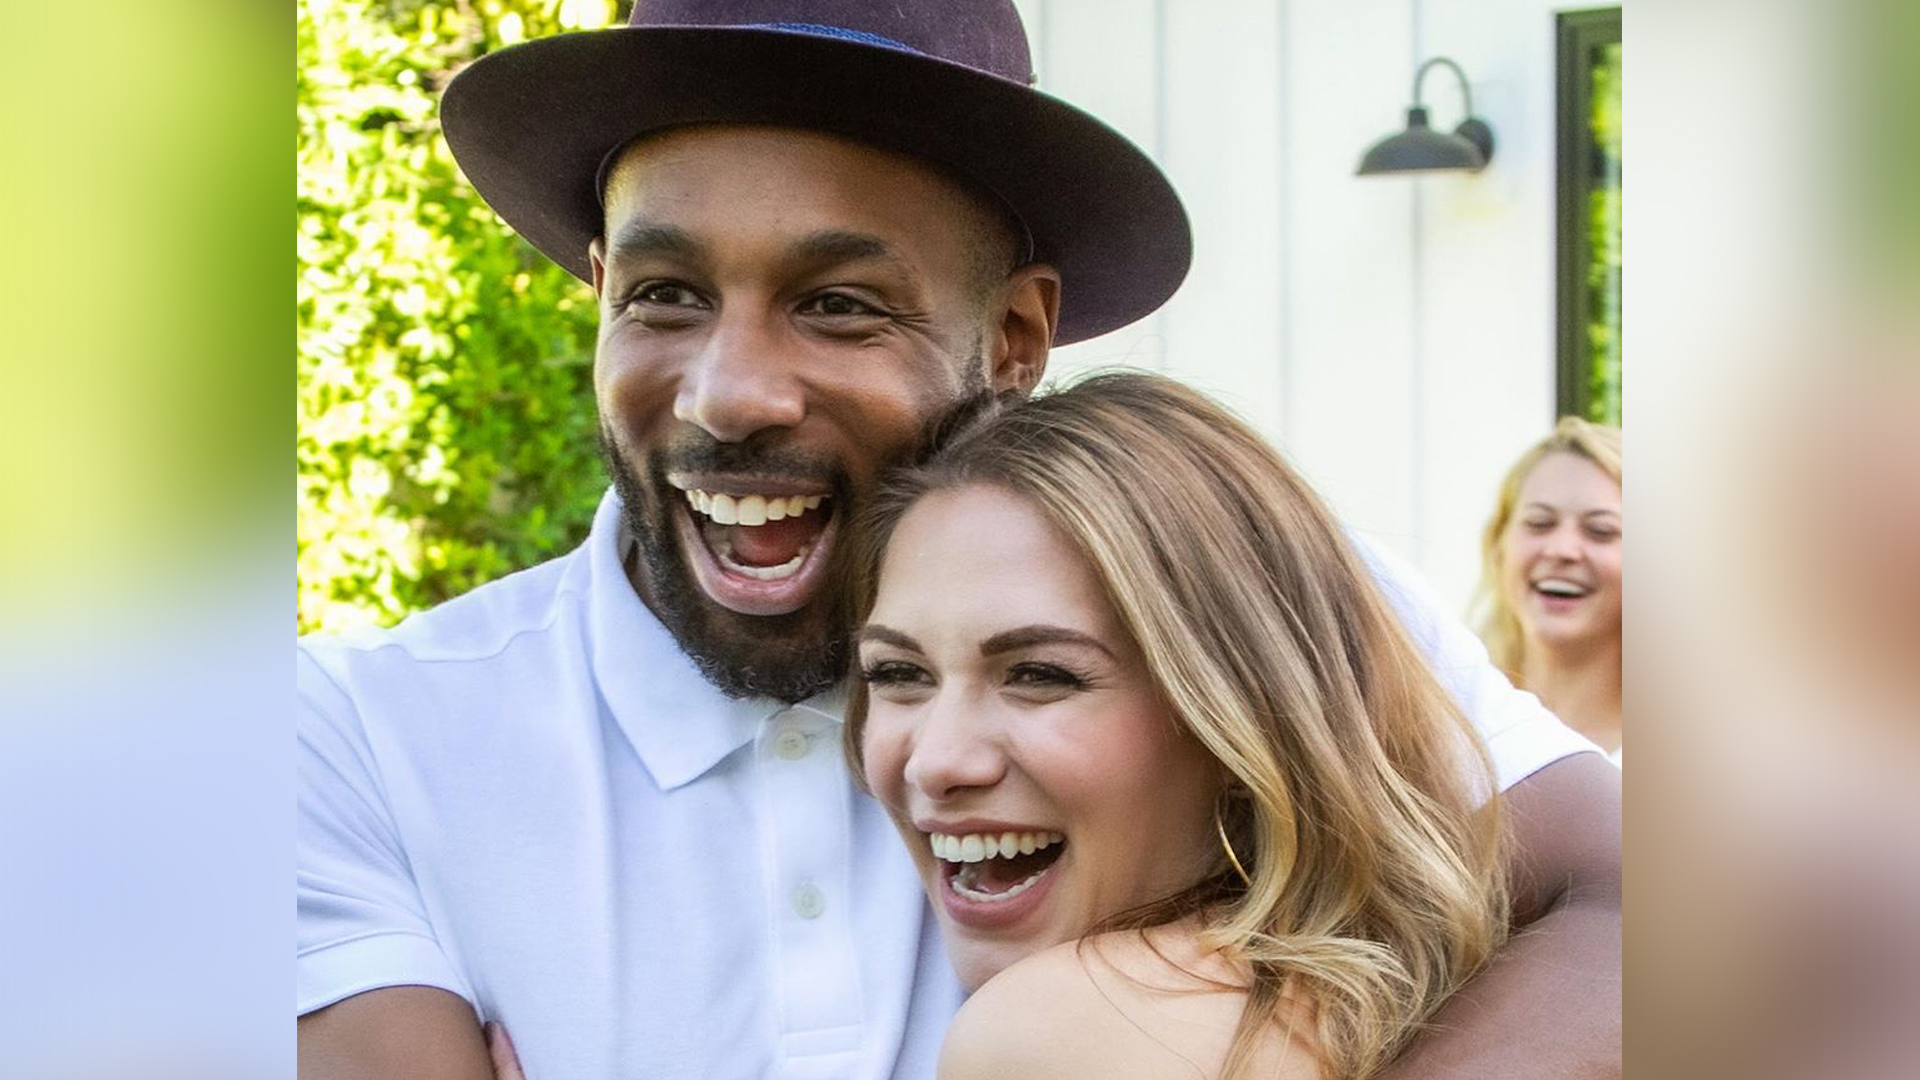 Allisoninlove stephen 'twitch' boss and allison holker adorably reveal